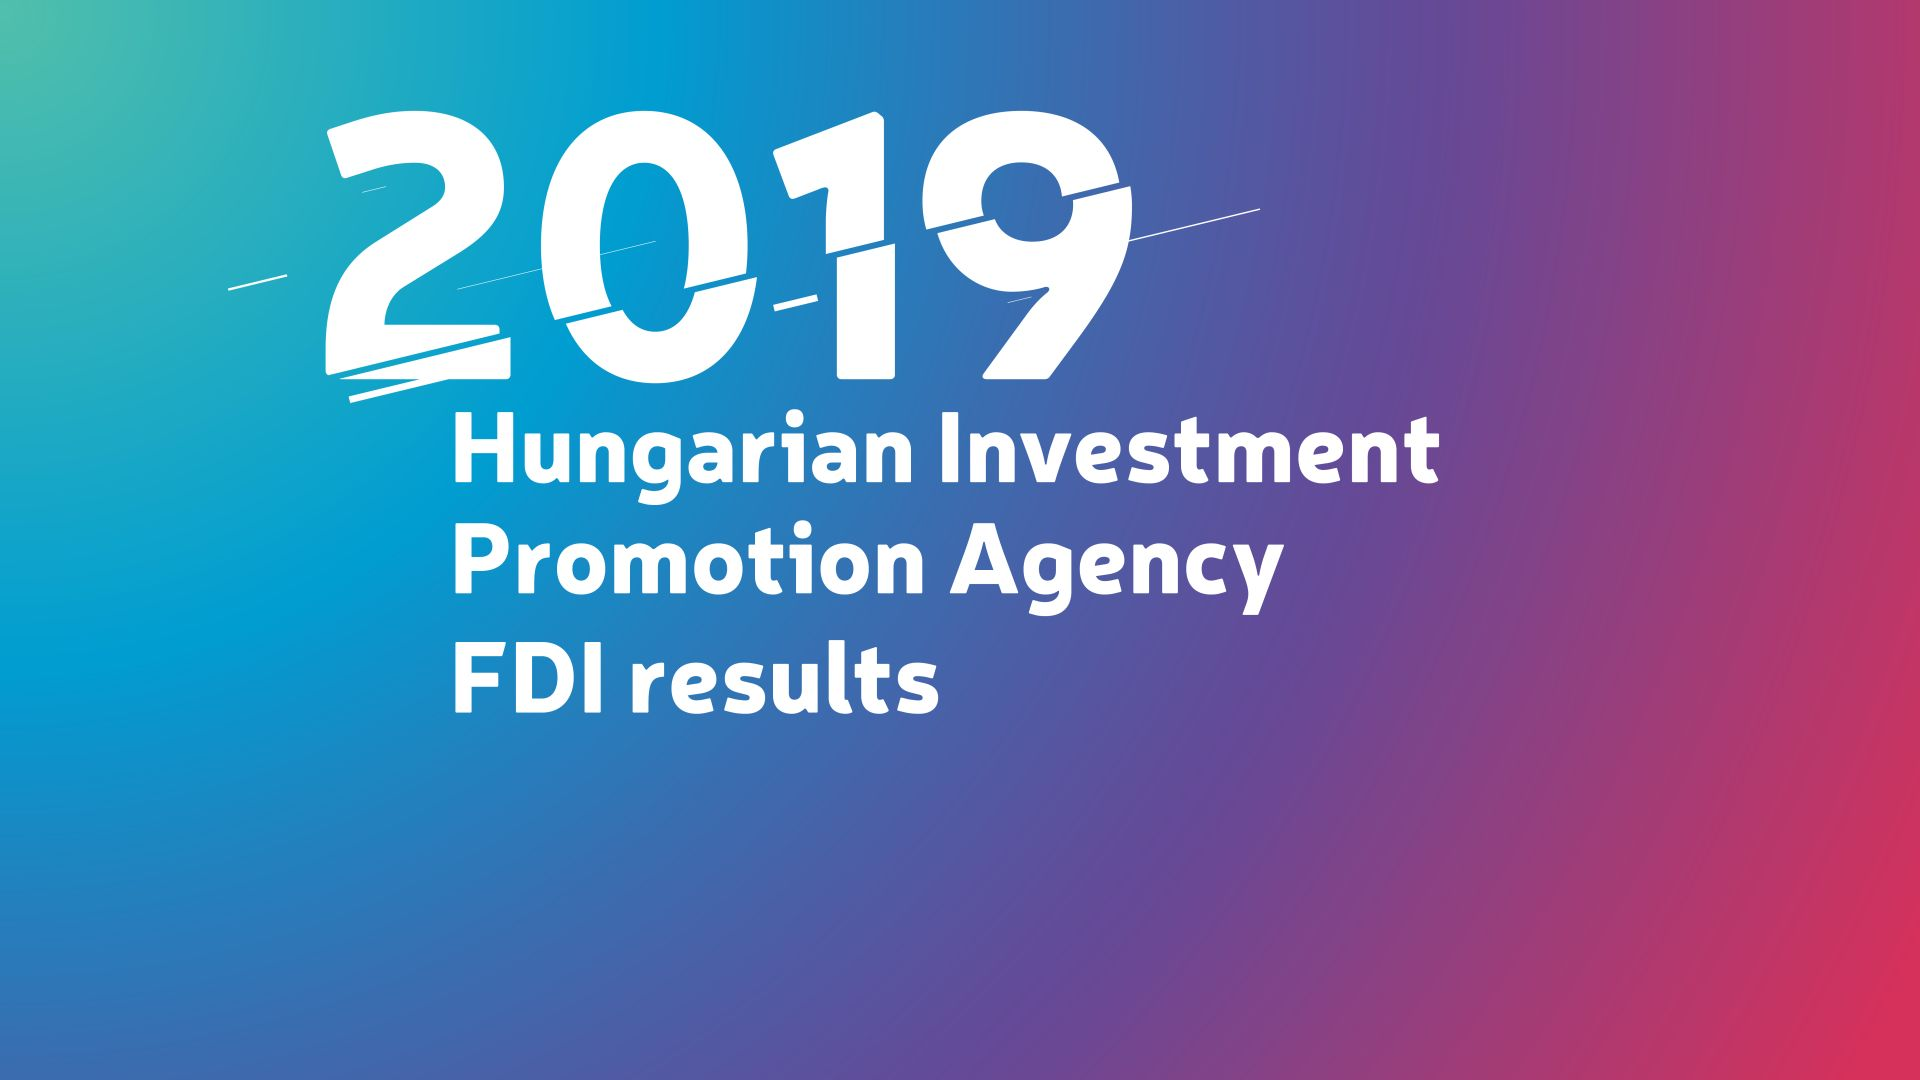 2019 marks another record year in FDI for Hungary